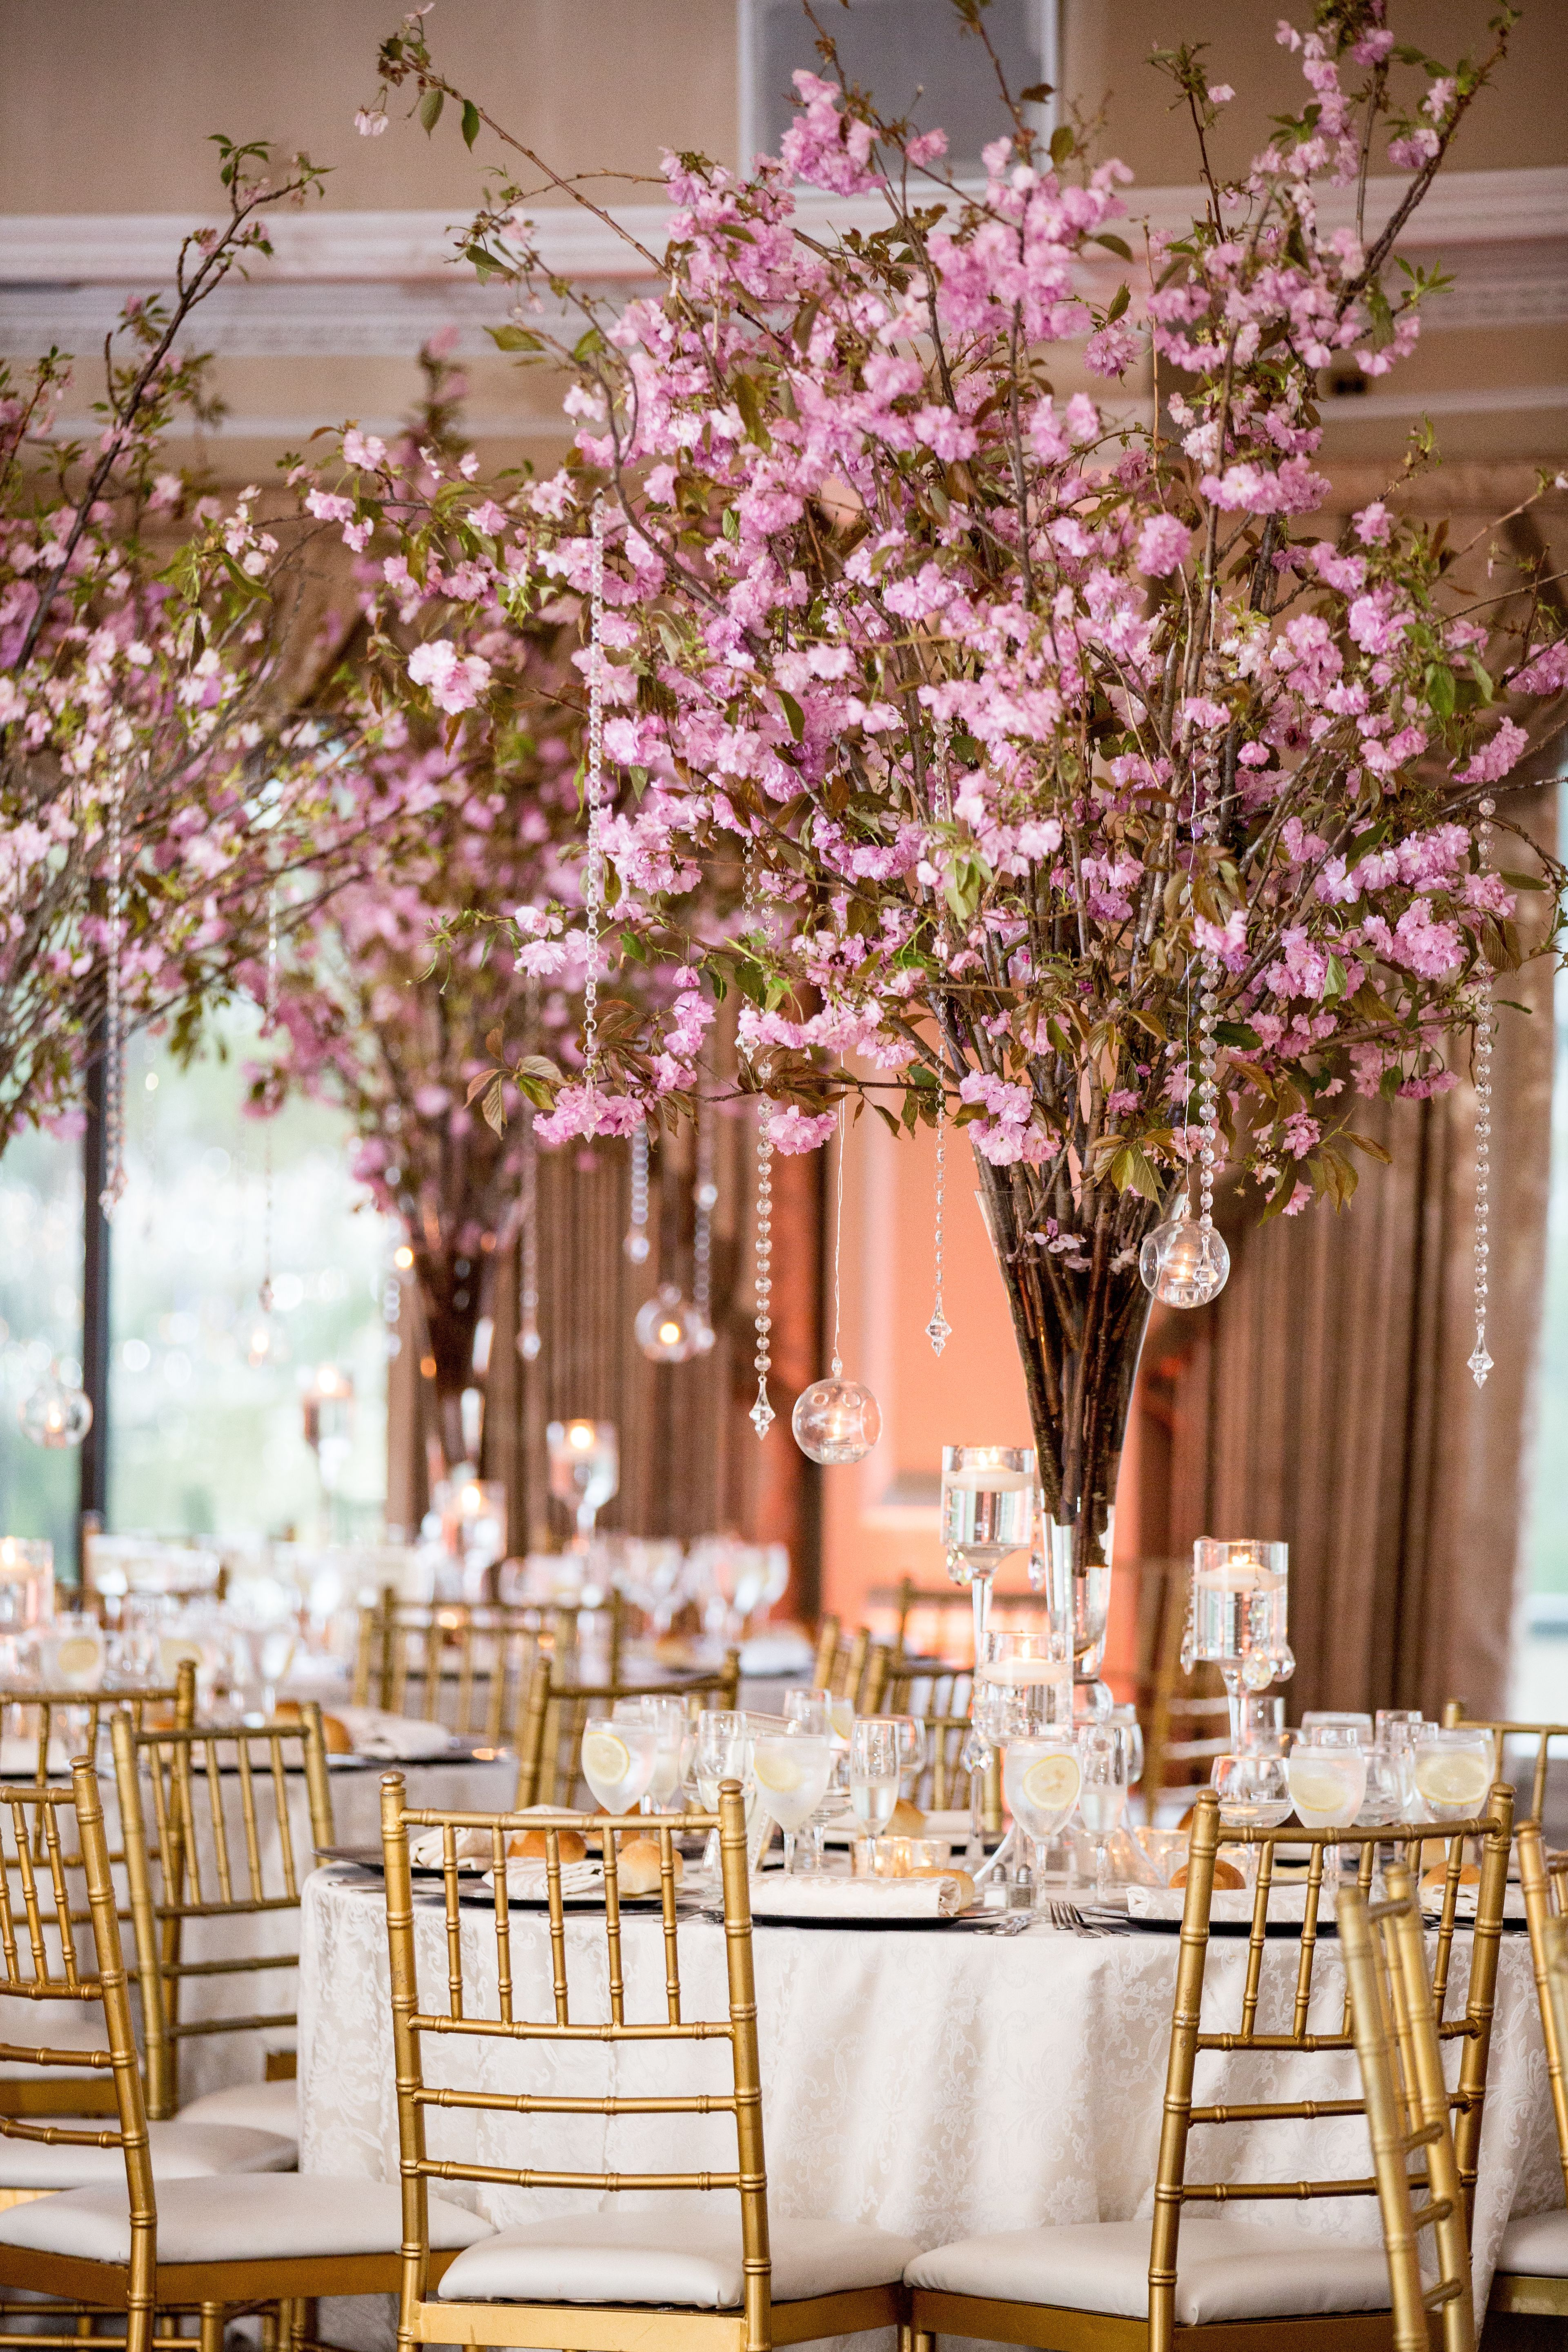 Pink Cherry Blossom Centerpieces With Crystals Cherry Blossom Centerpiece Cherry Blossom Wedding Centerpieces Cherry Blossom Wedding